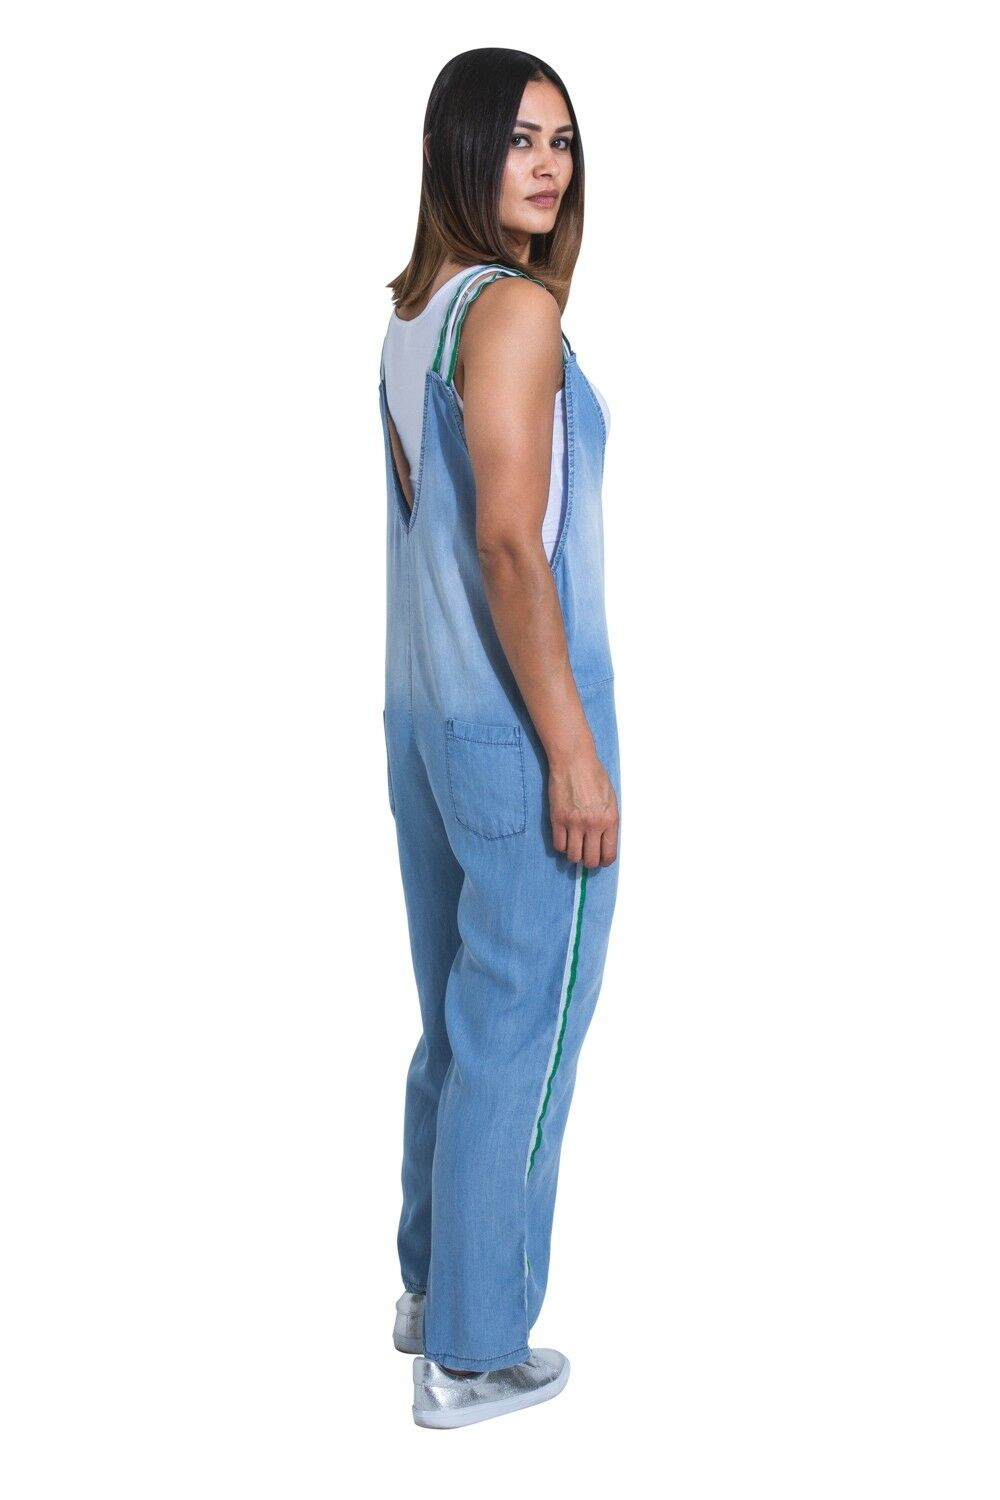 Standing upright with side view of all-in-one light-blue playsuit, showing rear pockets and green stripe down the leg seam.